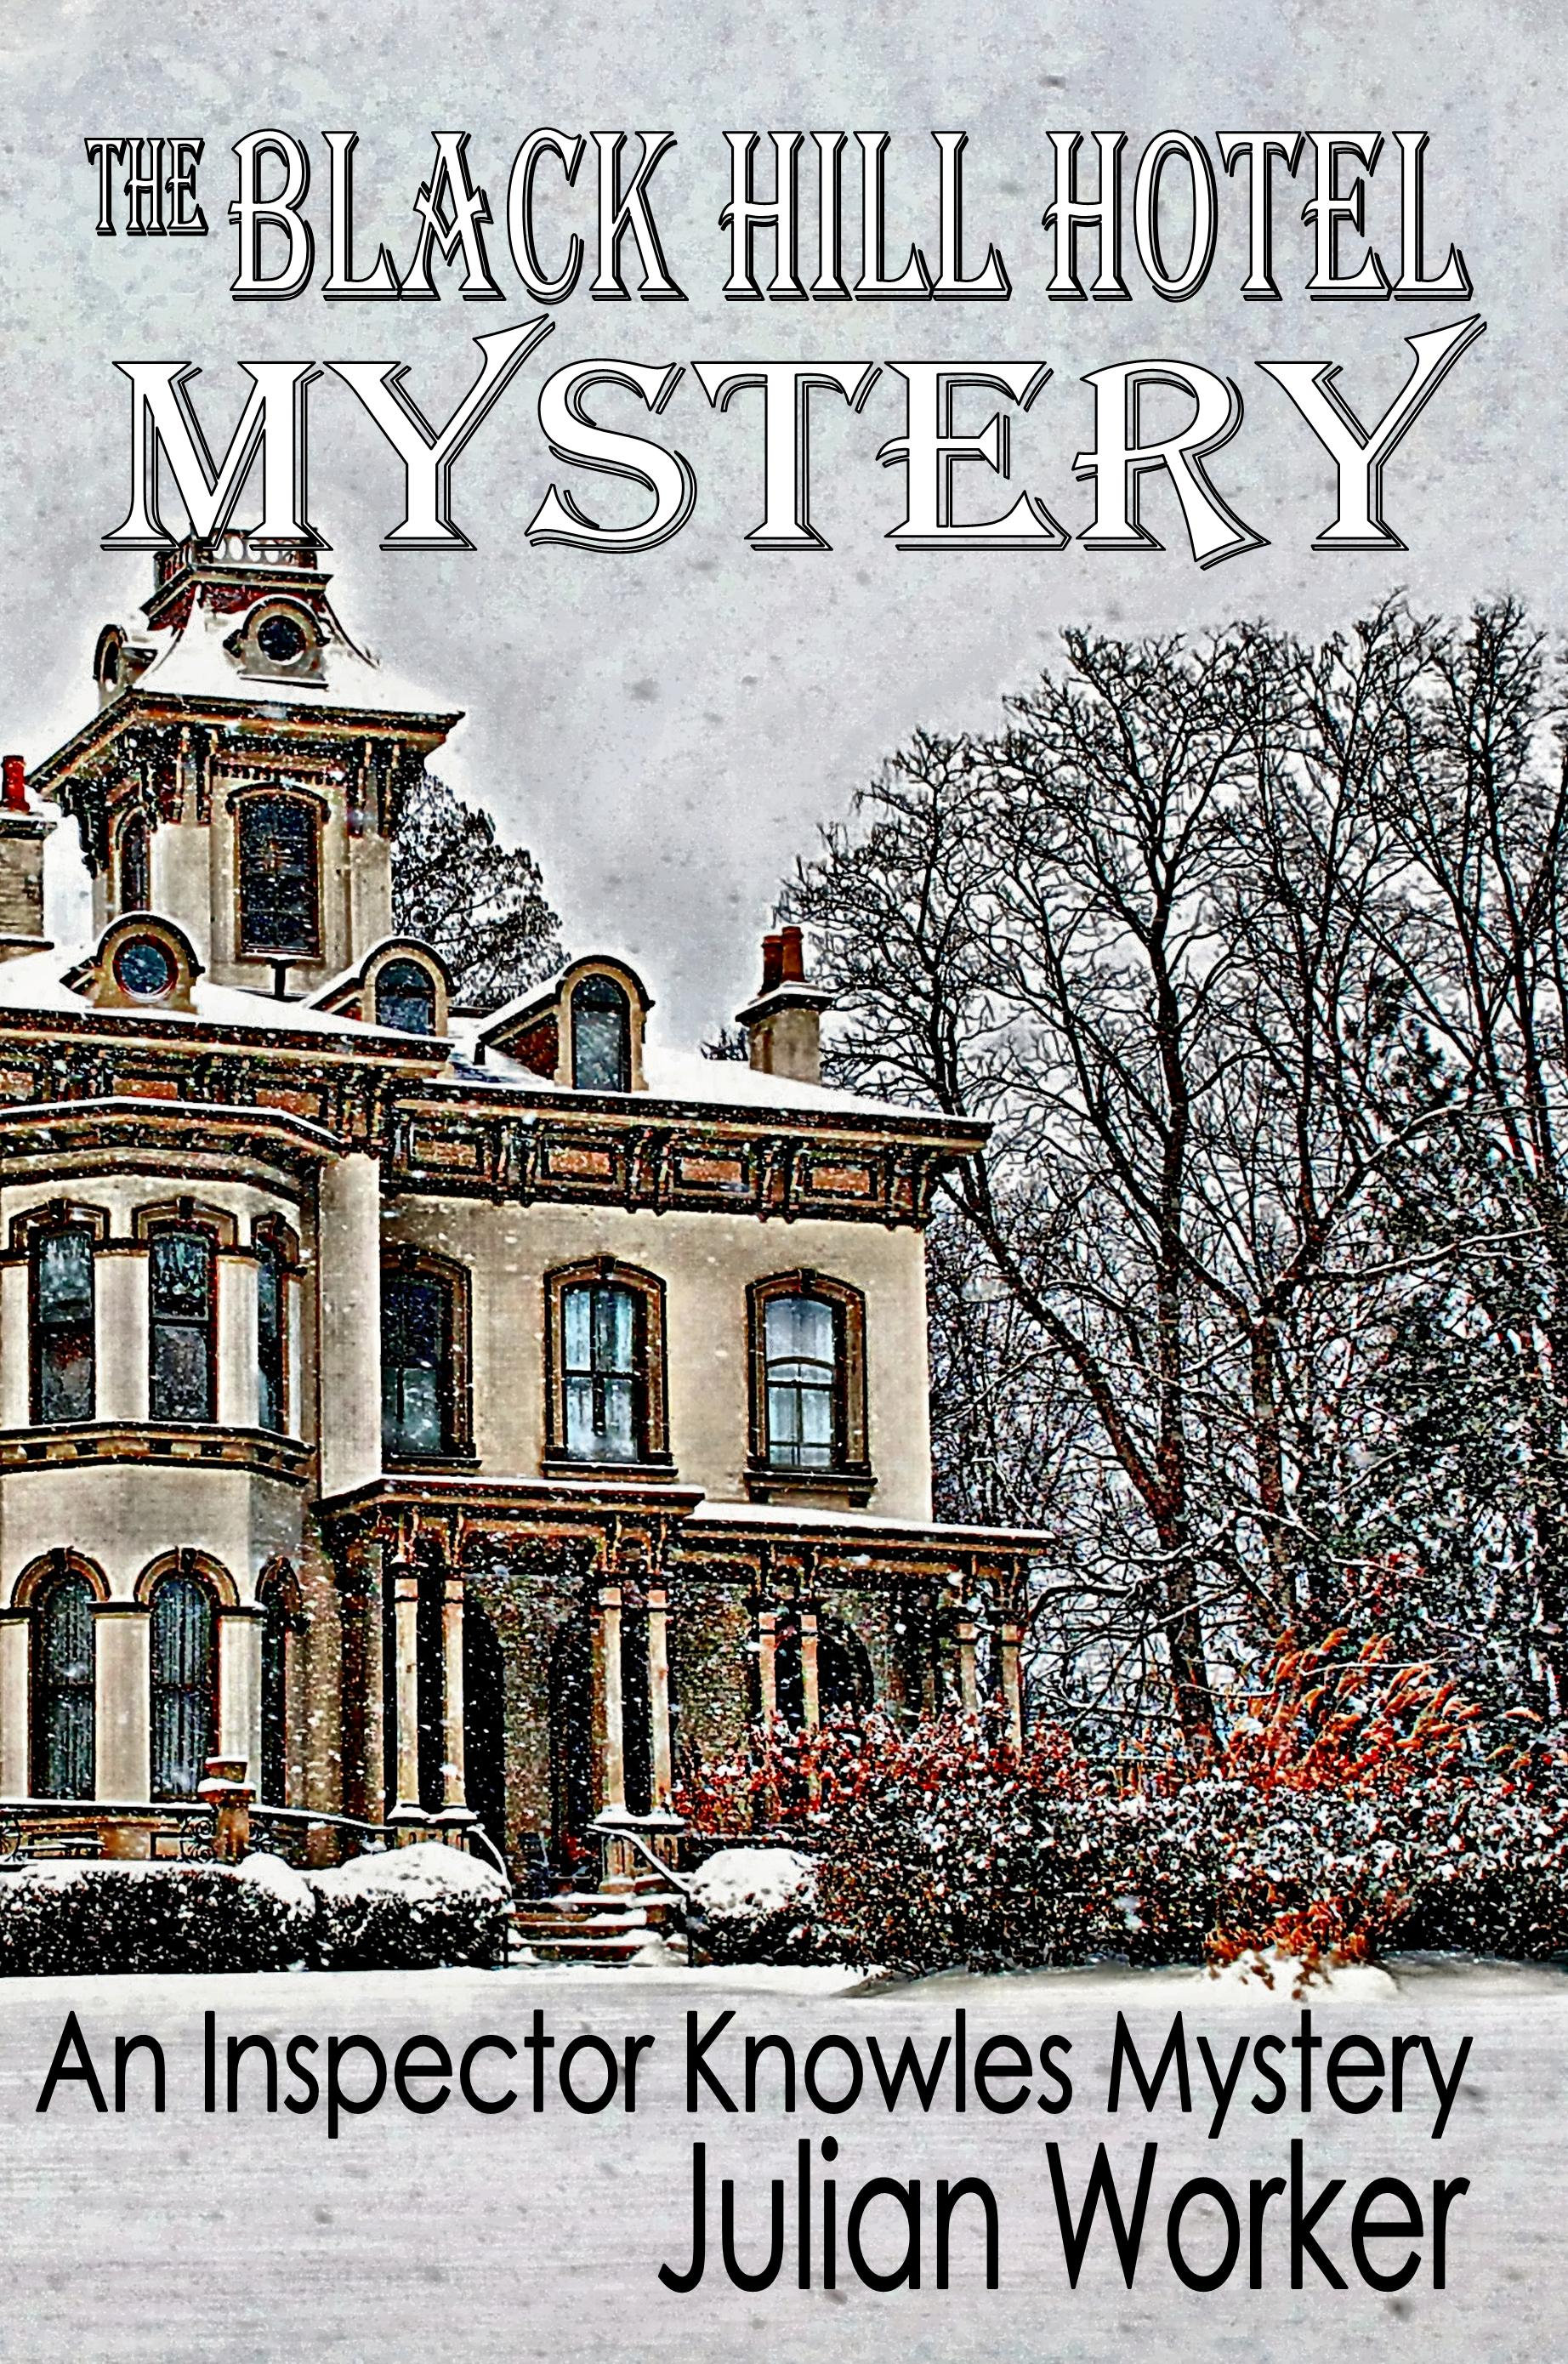 The Black Hill Hotel Mystery – 37